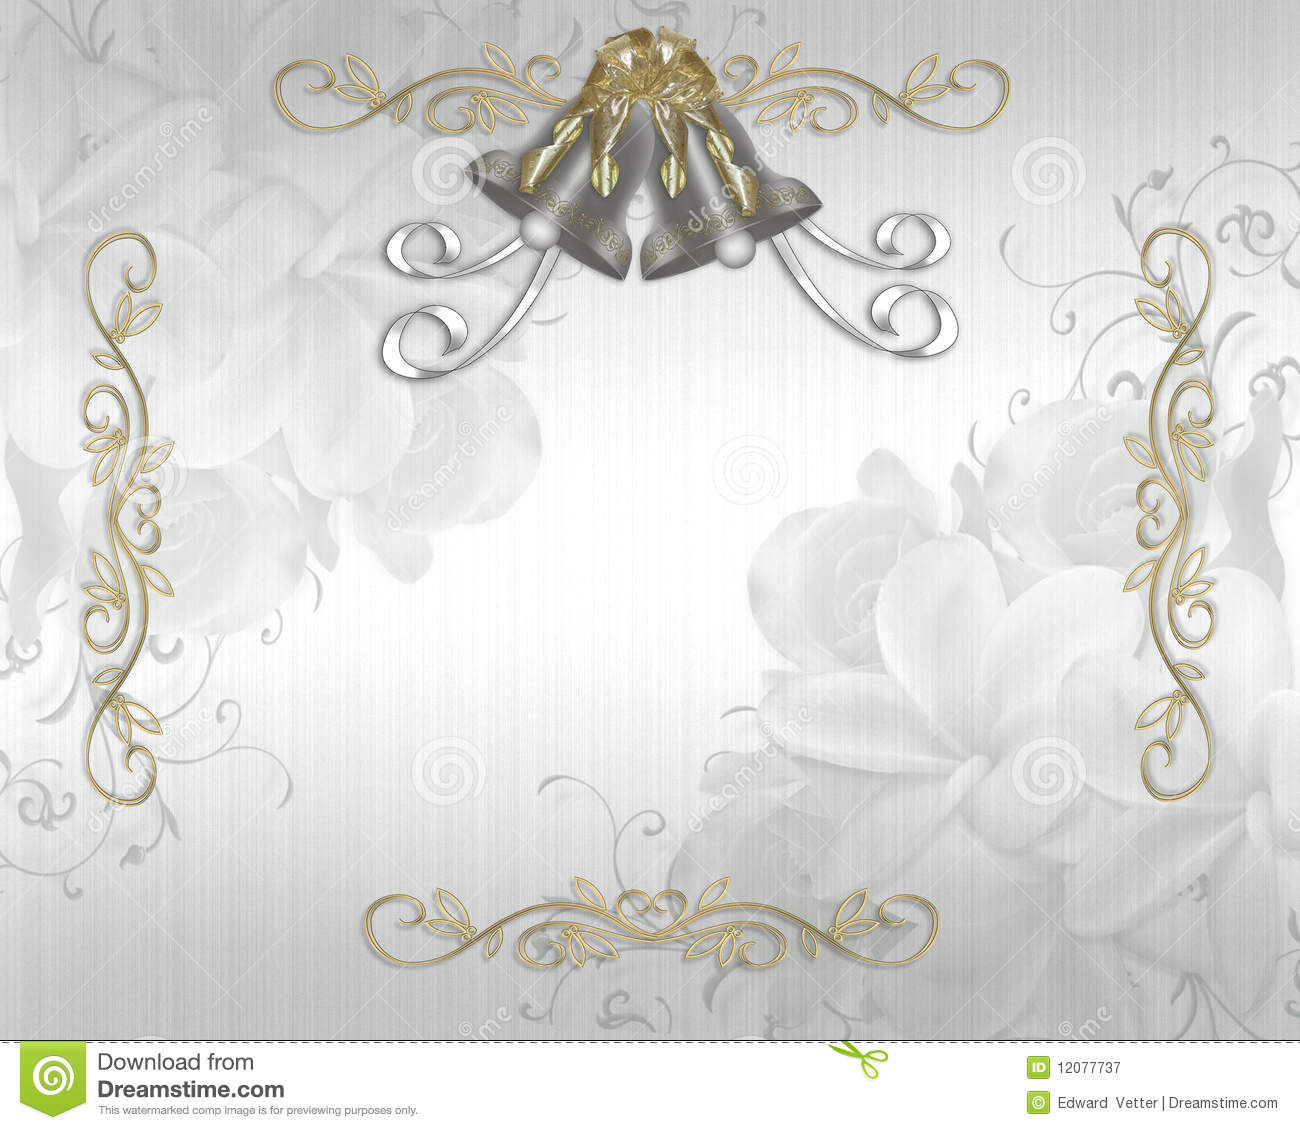 Backdrops Silver Wedding Invitations: Wedding Invitation Elegant Satin Stock Illustration